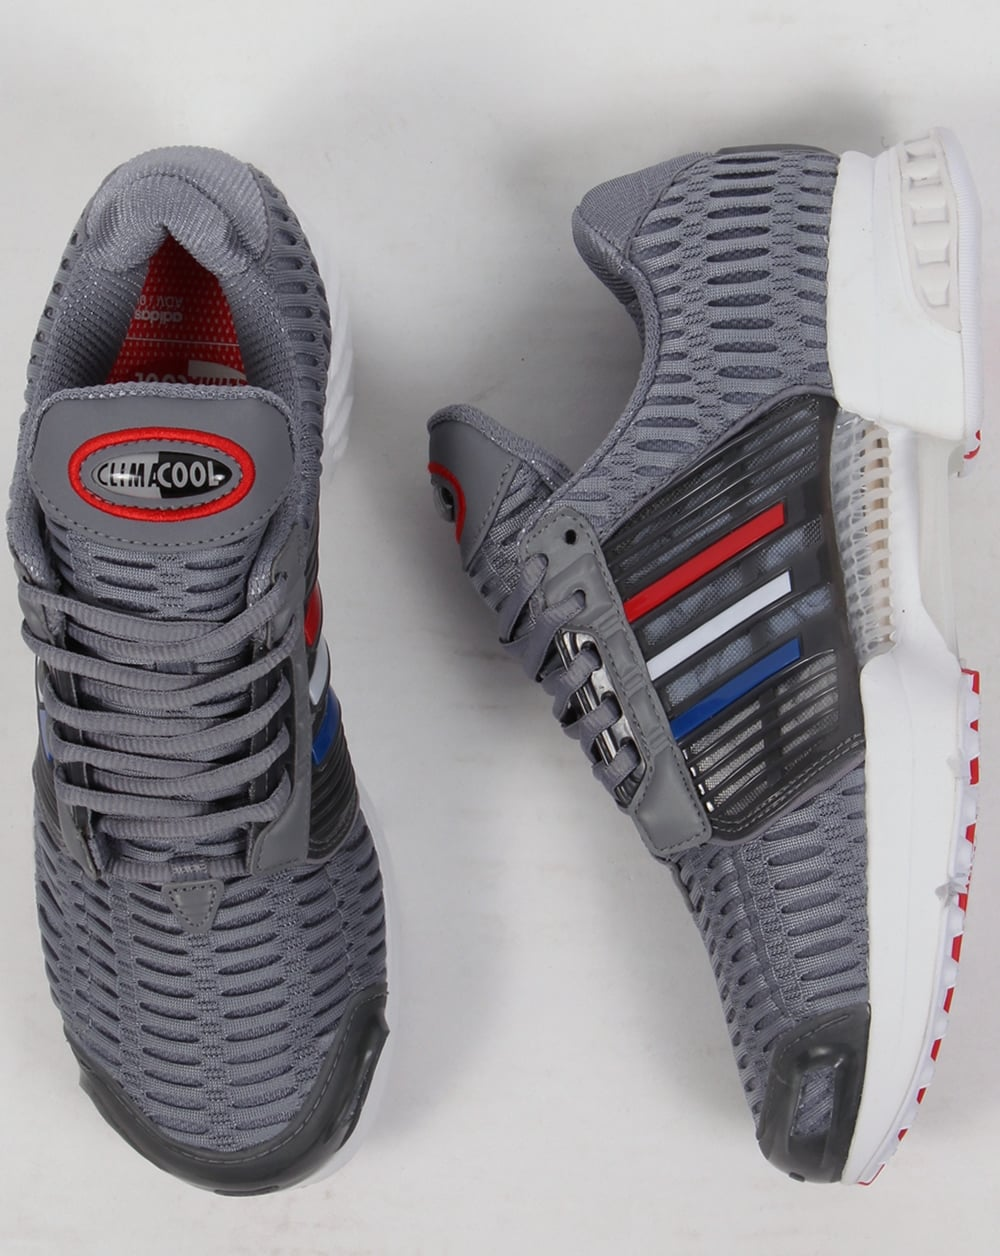 04f97eb2363 Adidas Clima Cool 1 Trainers Grey Red